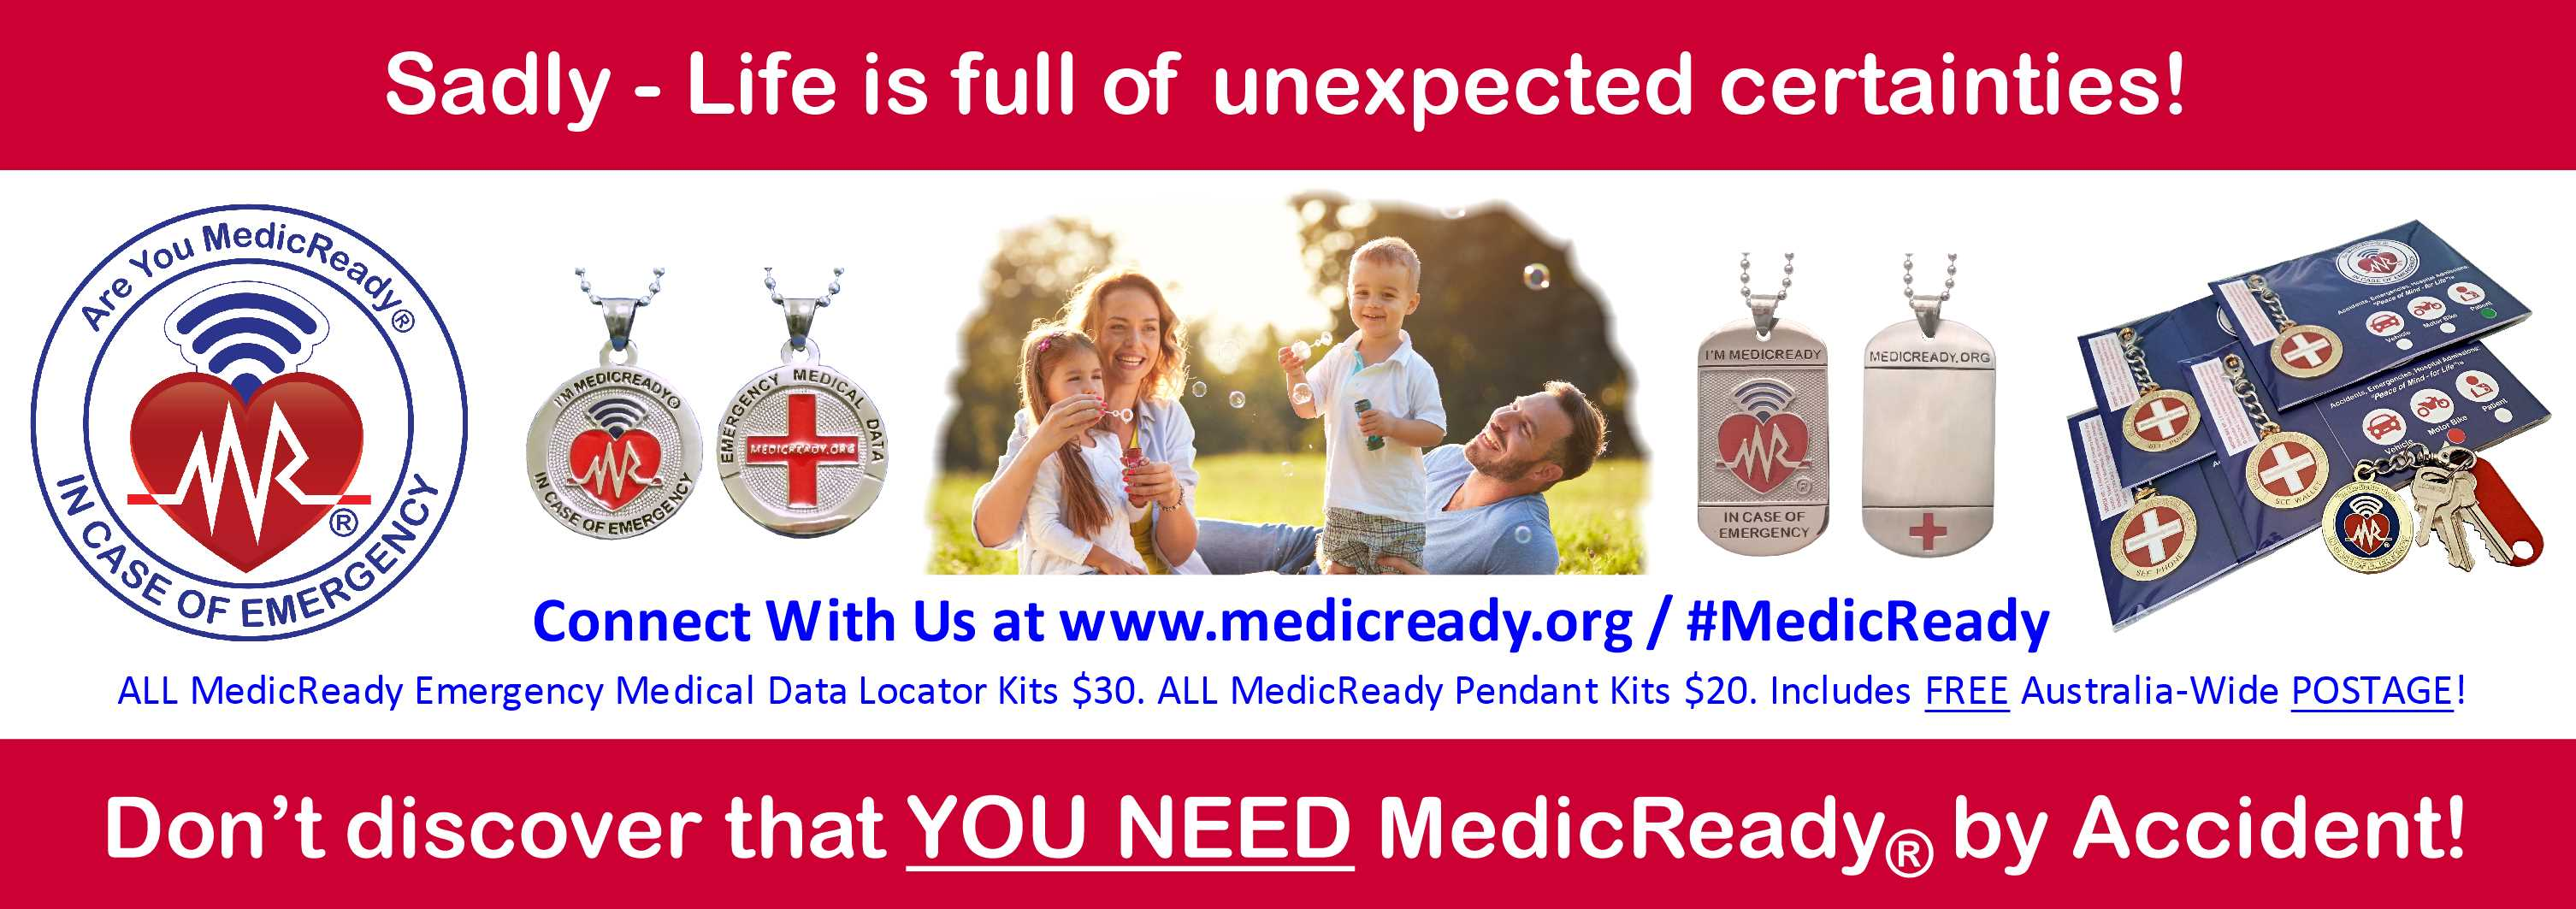 MedicReady Family